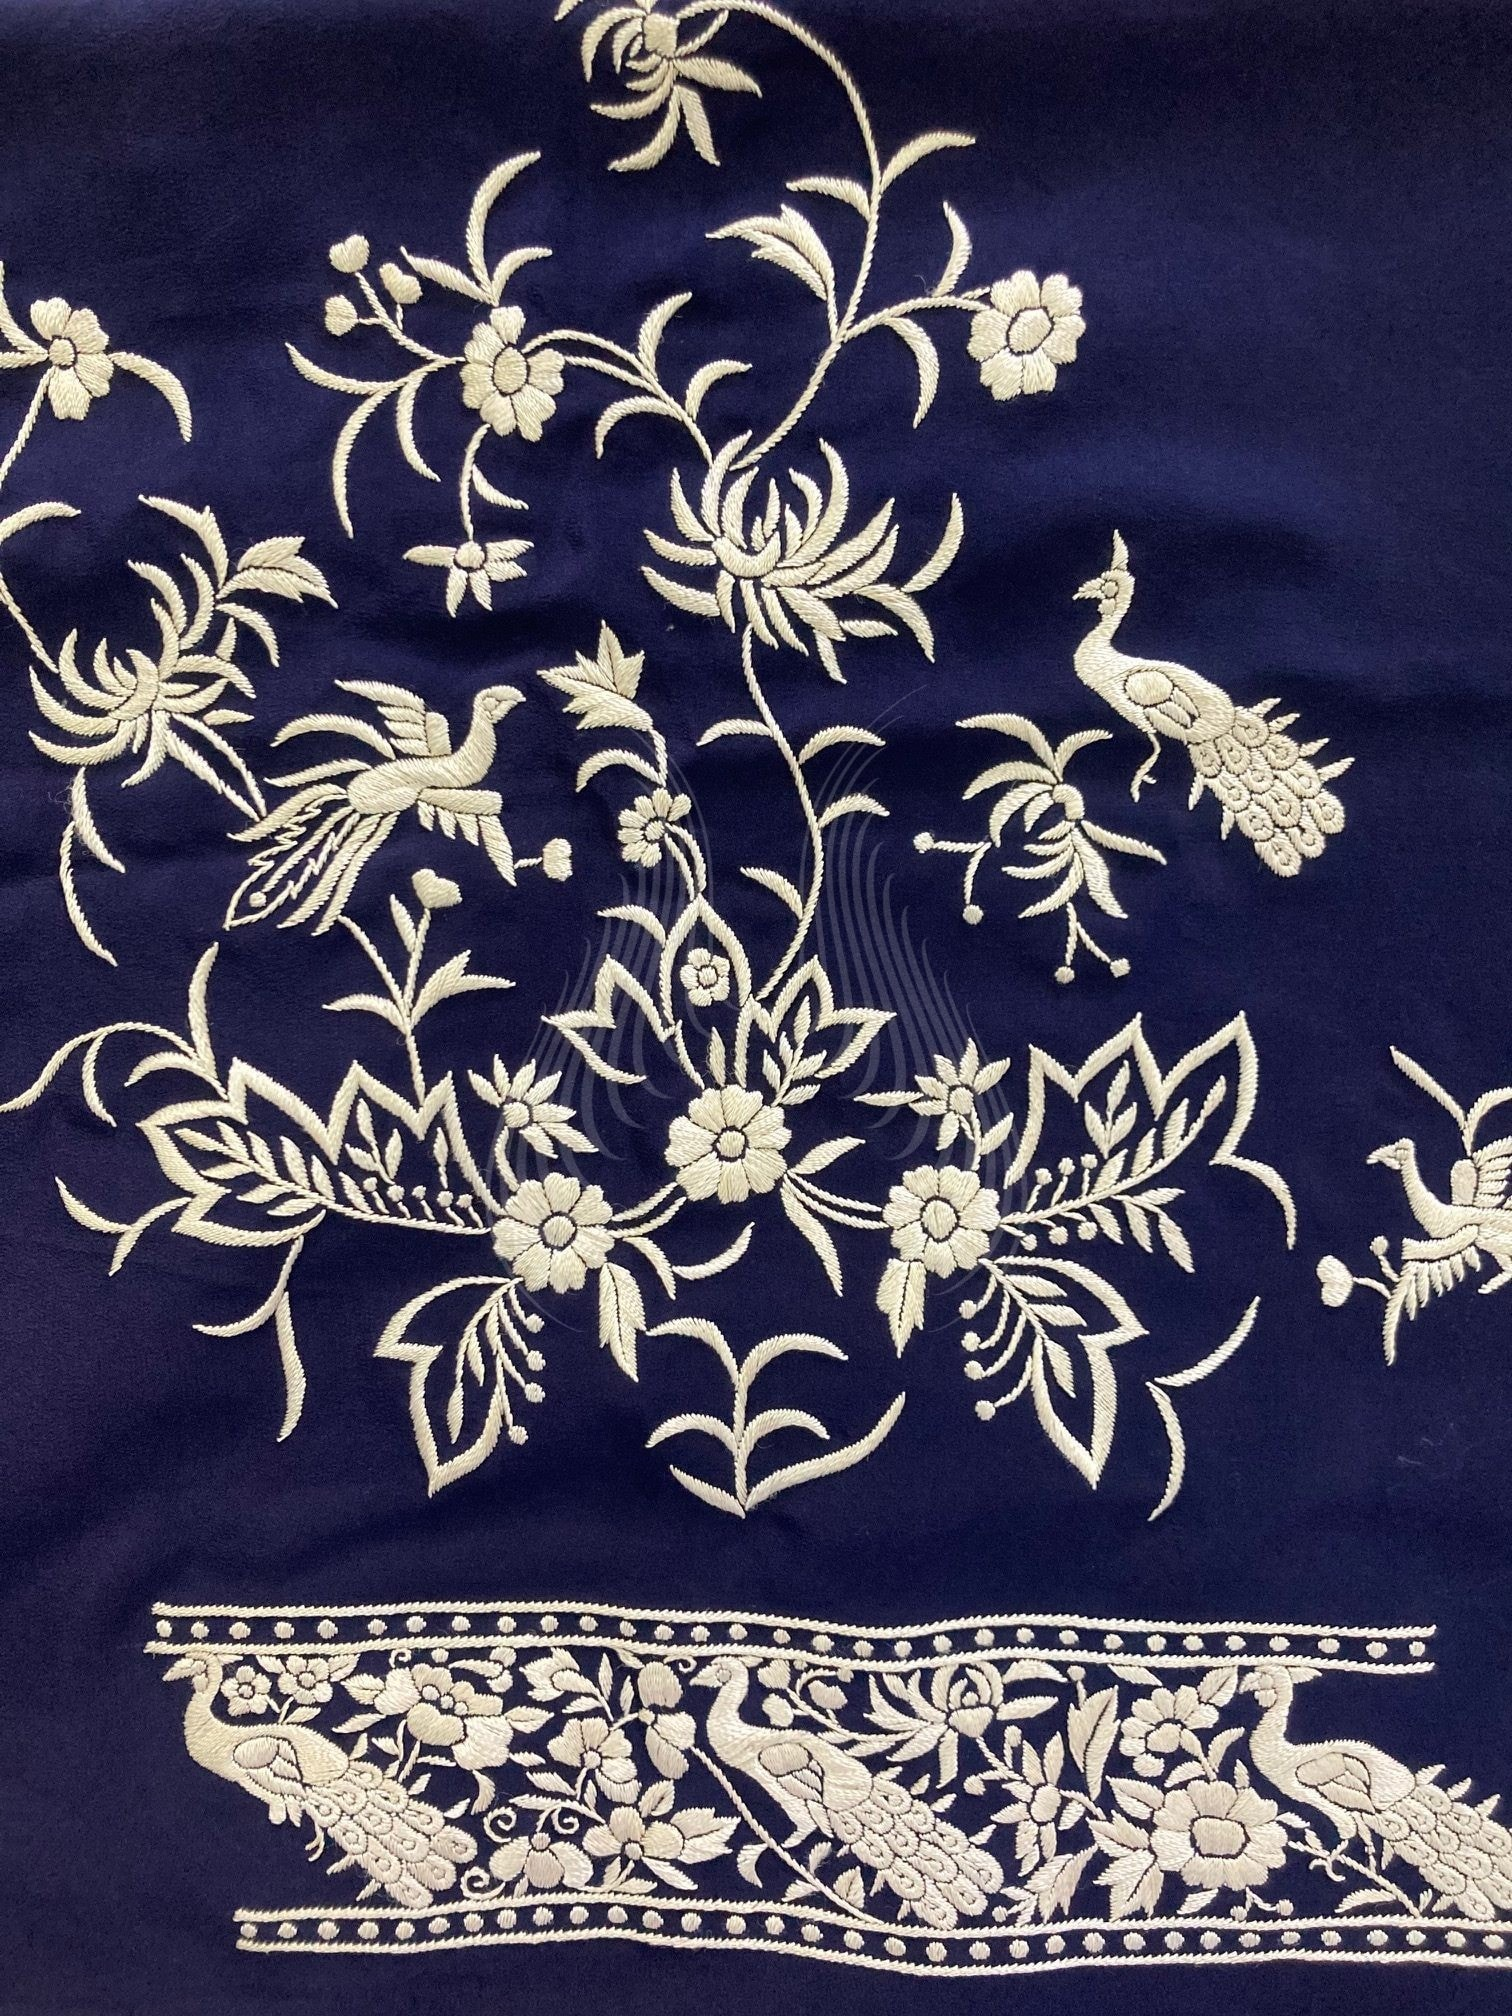 Peacock Motif with birds and chrysanthemums (G105)